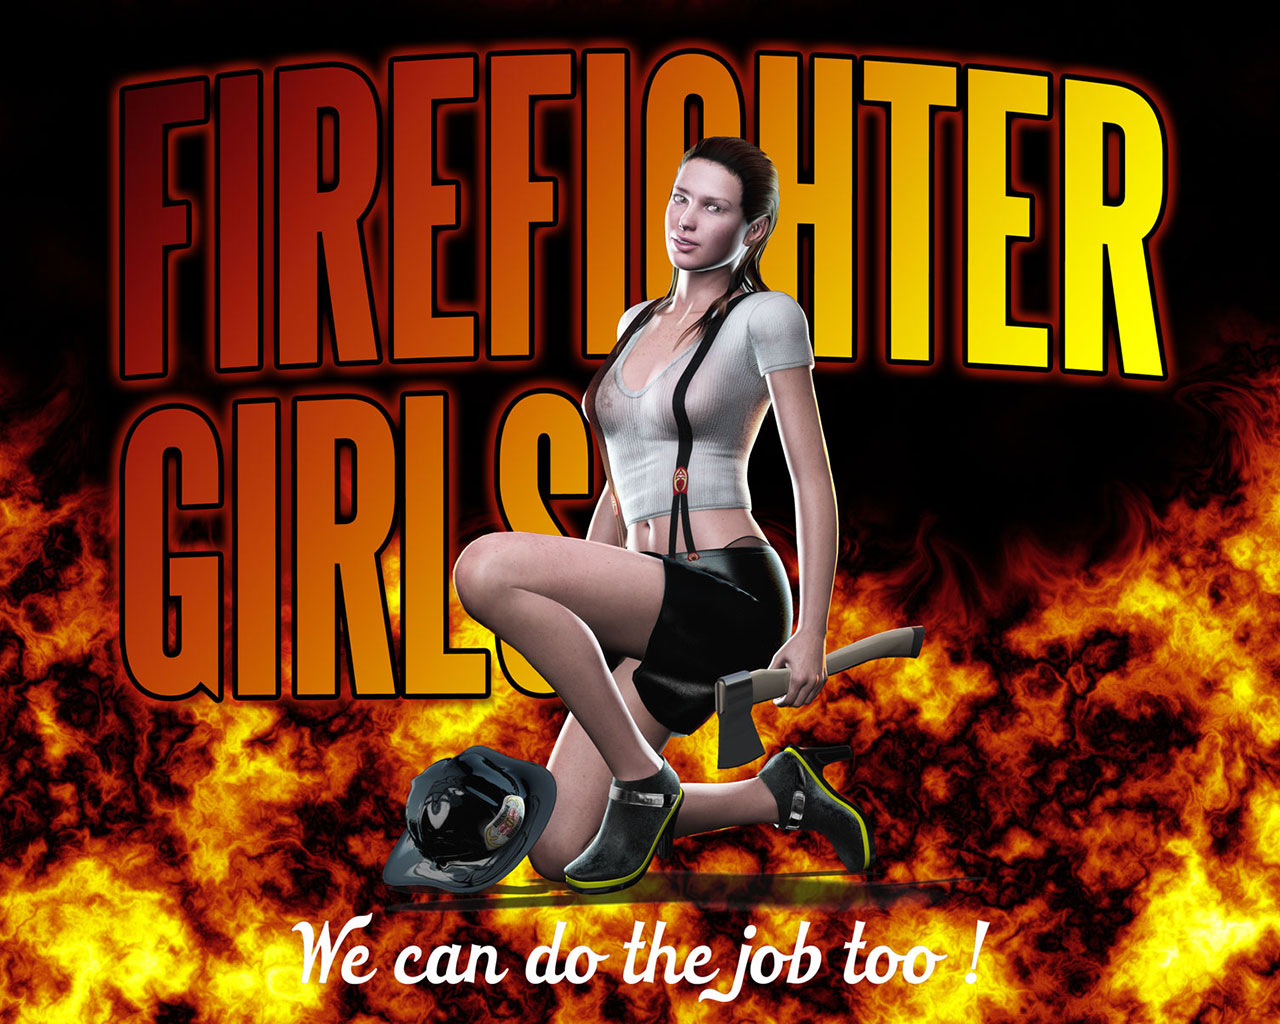 Cool Firefighter Wallpaper Firefighters 1280x1024